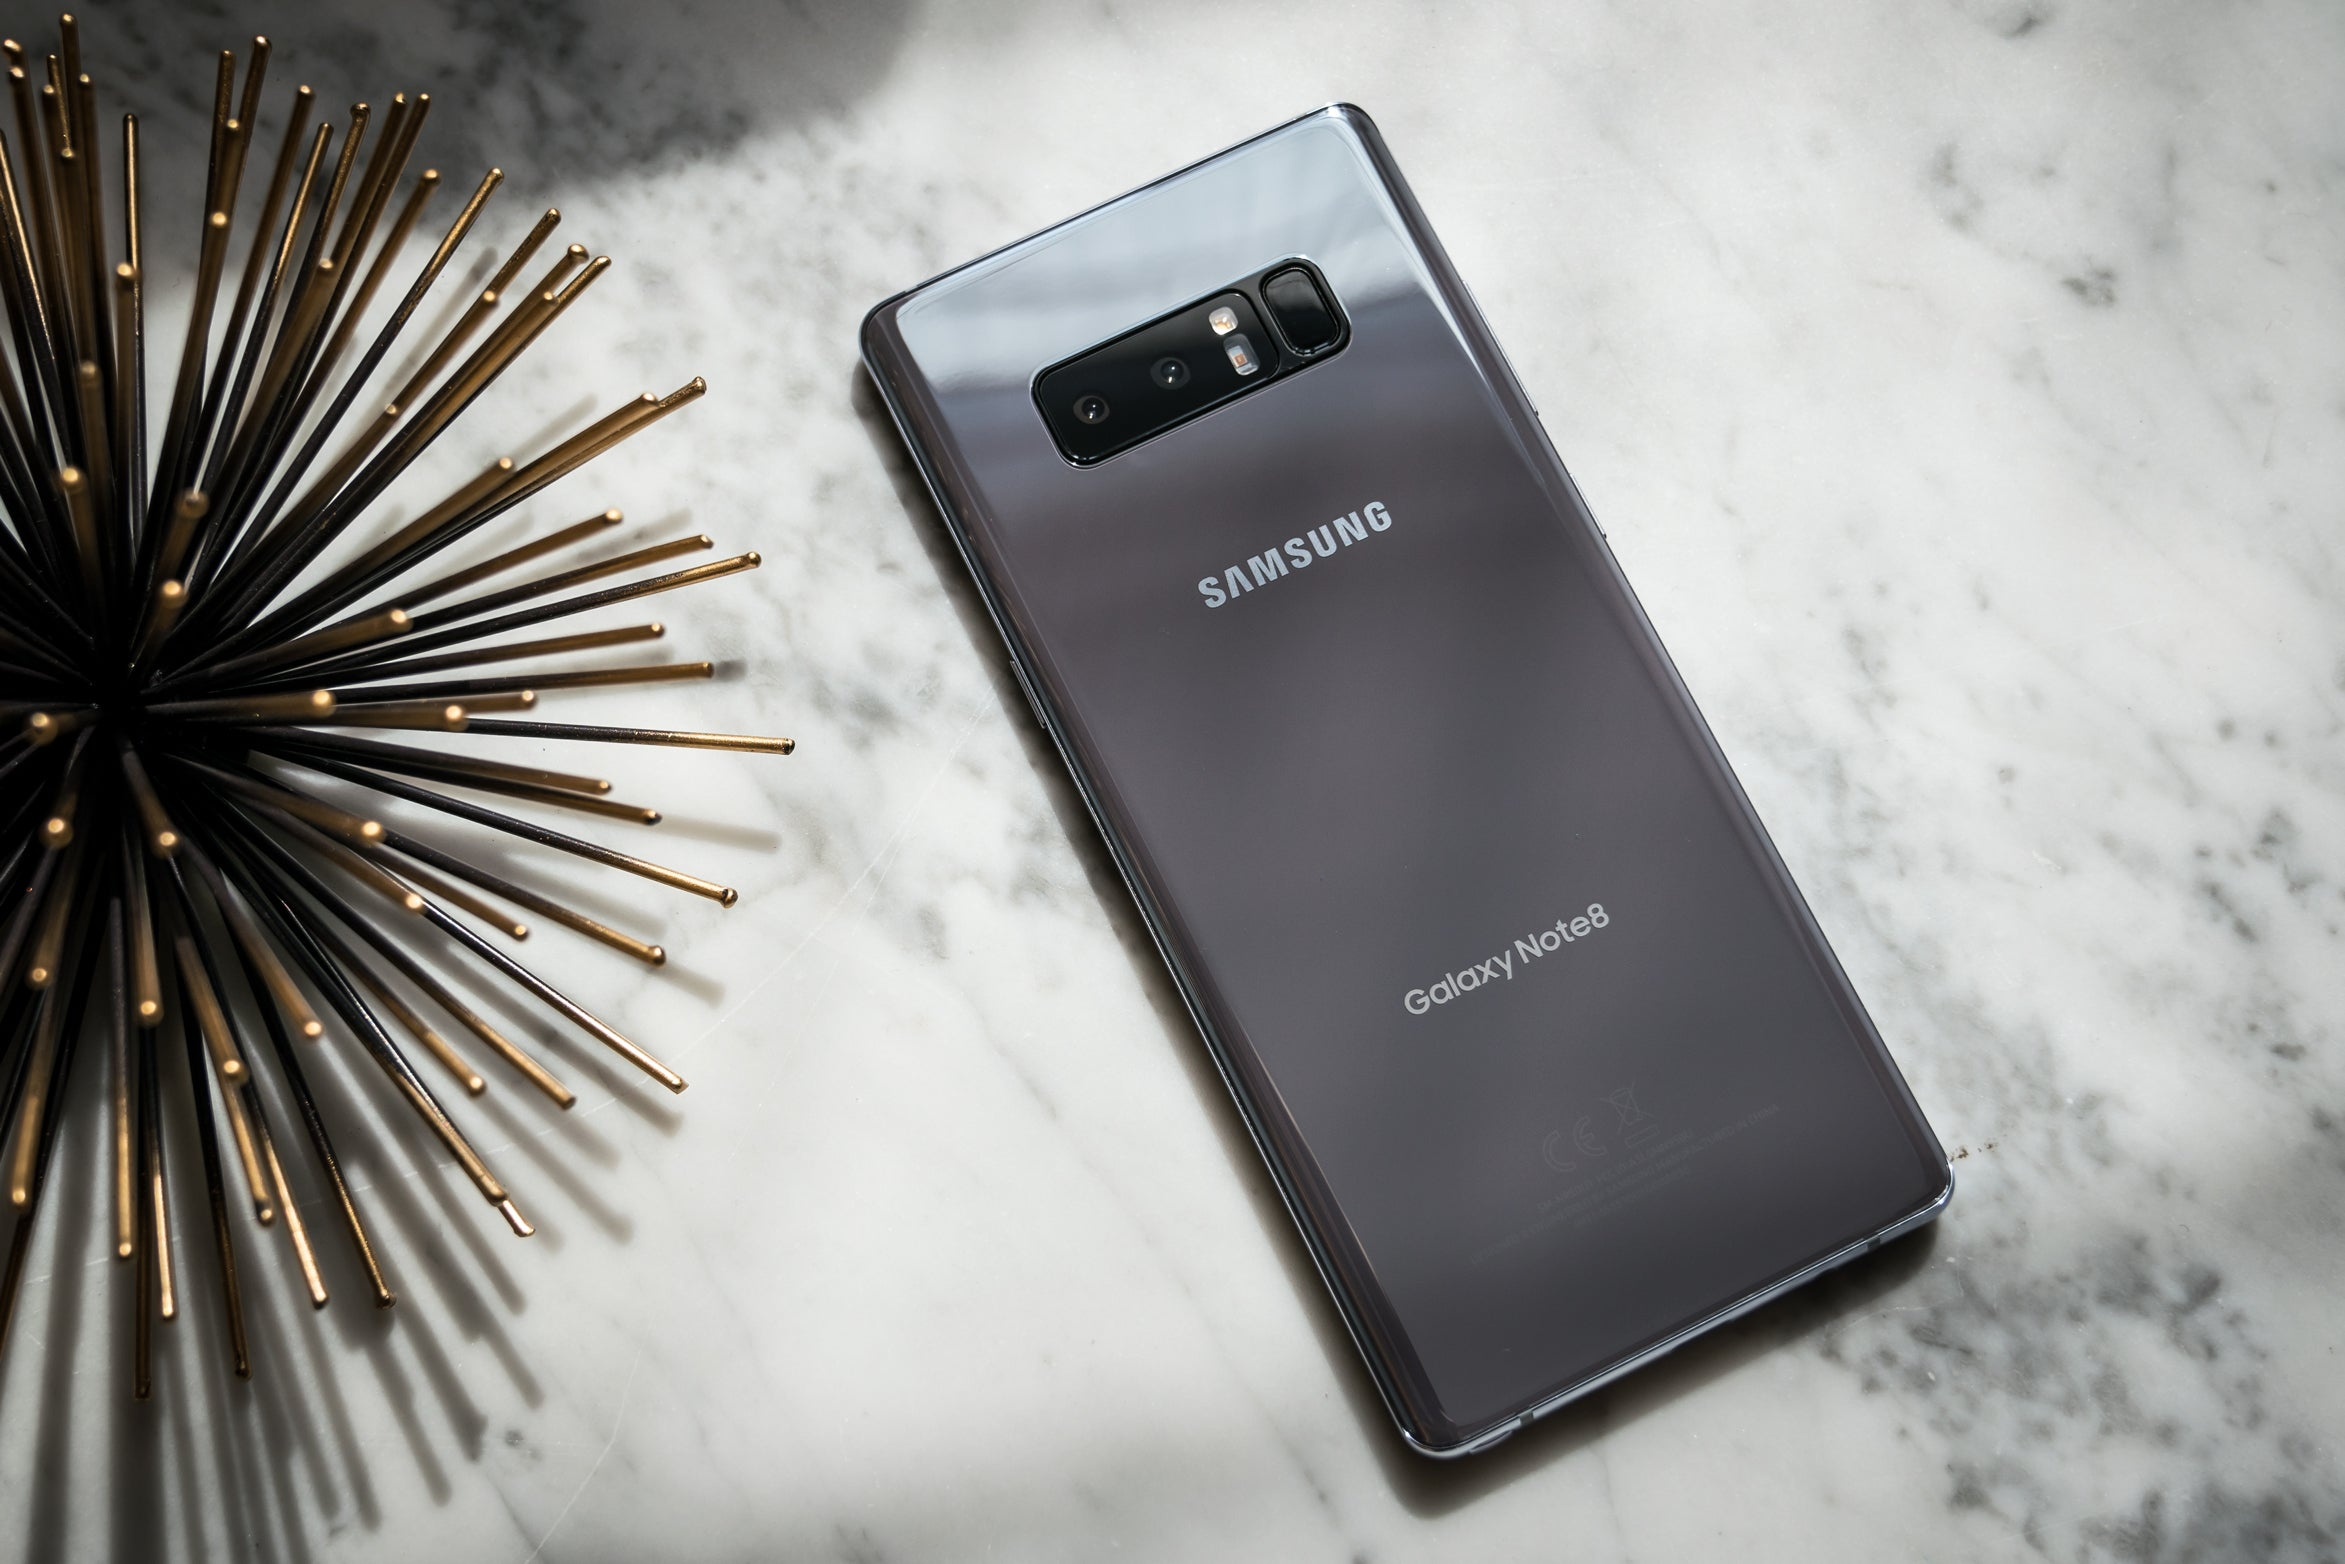 Galaxy Note 8 Hands On This Is How Samsung Will Make You Forget 7 Forever